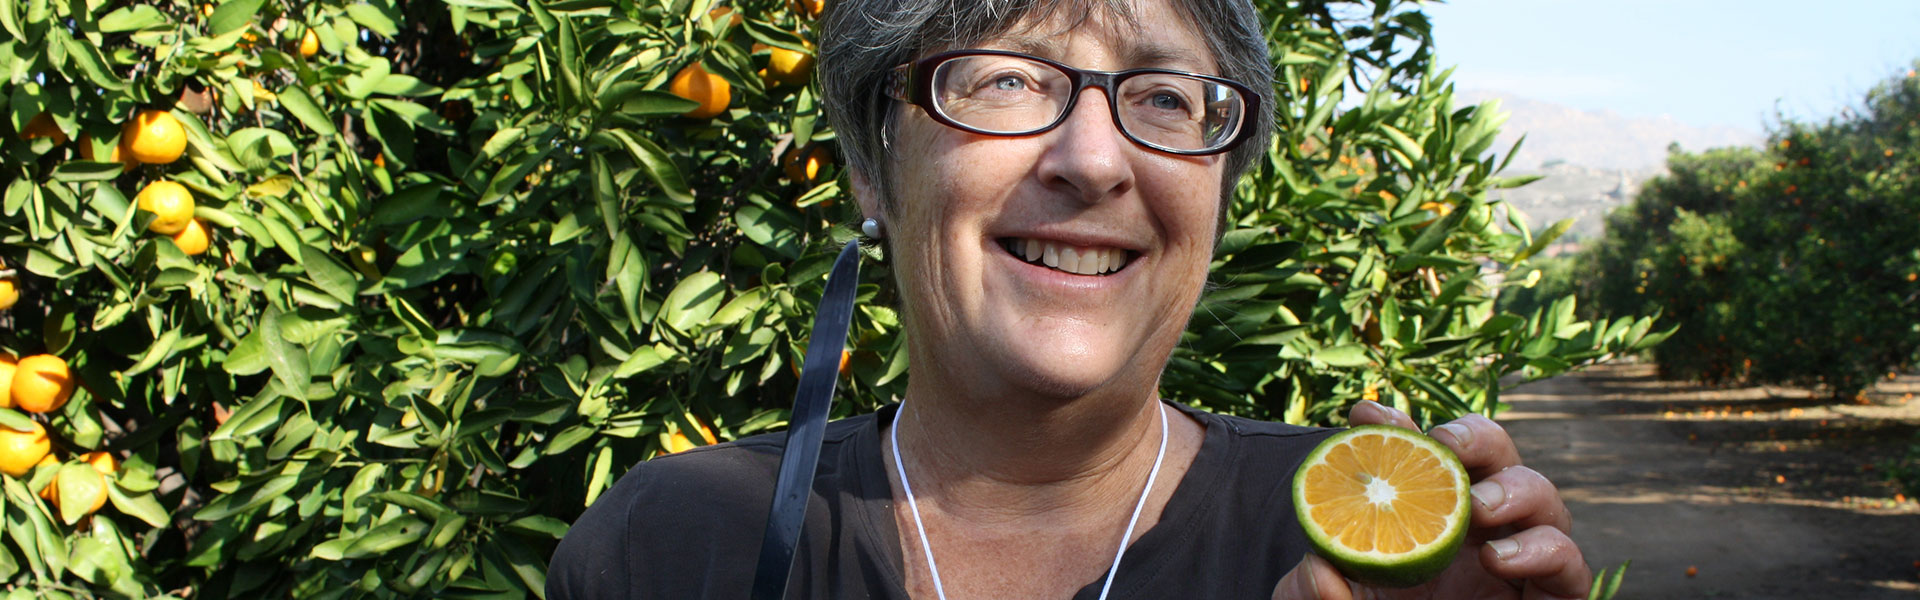 Dr Tracy Kahn, curator of the UCR Citrus Variety Collection and holder of the Givaudan Citrus Variety Collection Endowed Chair